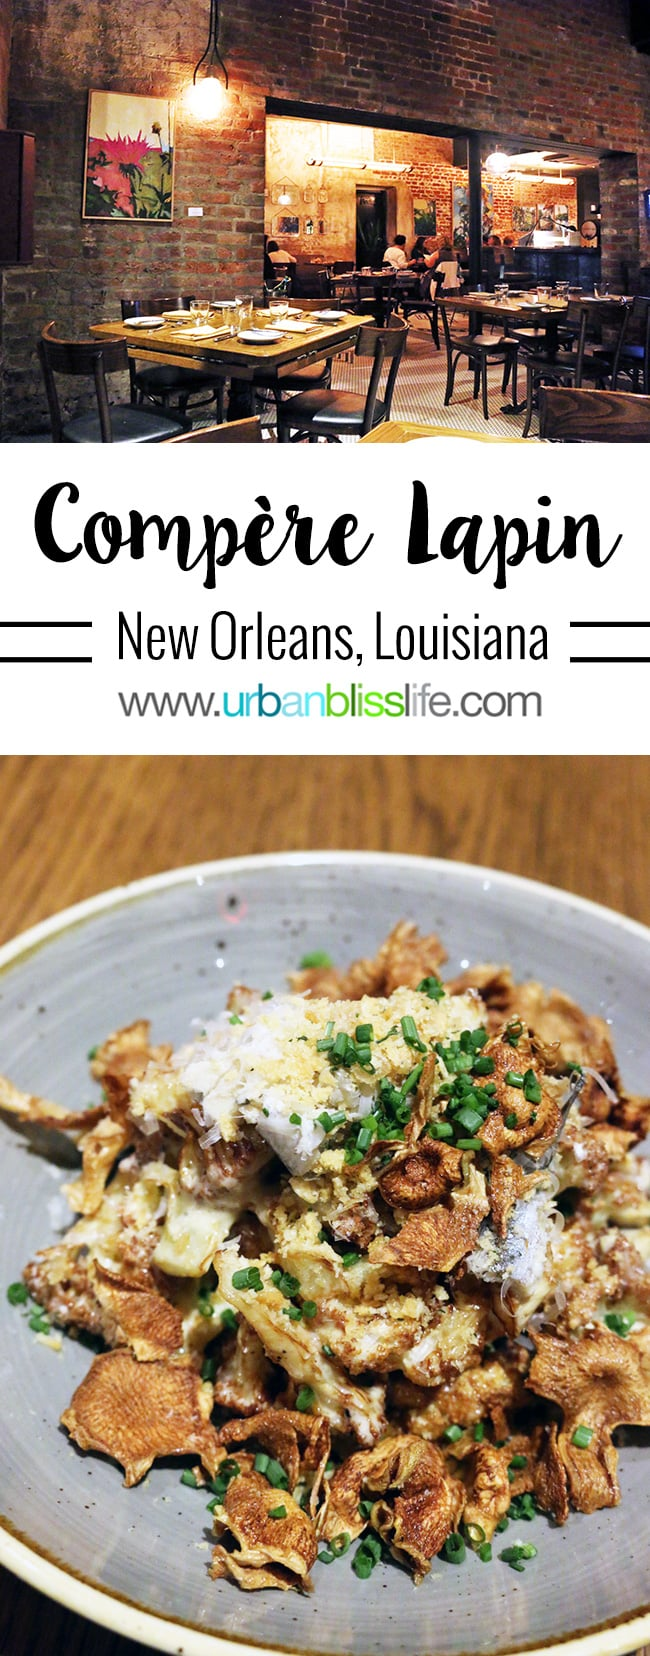 Compère Lapin restaurant in New Orleans, Louisiana. Dining Guide on UrbanBlissLife.com